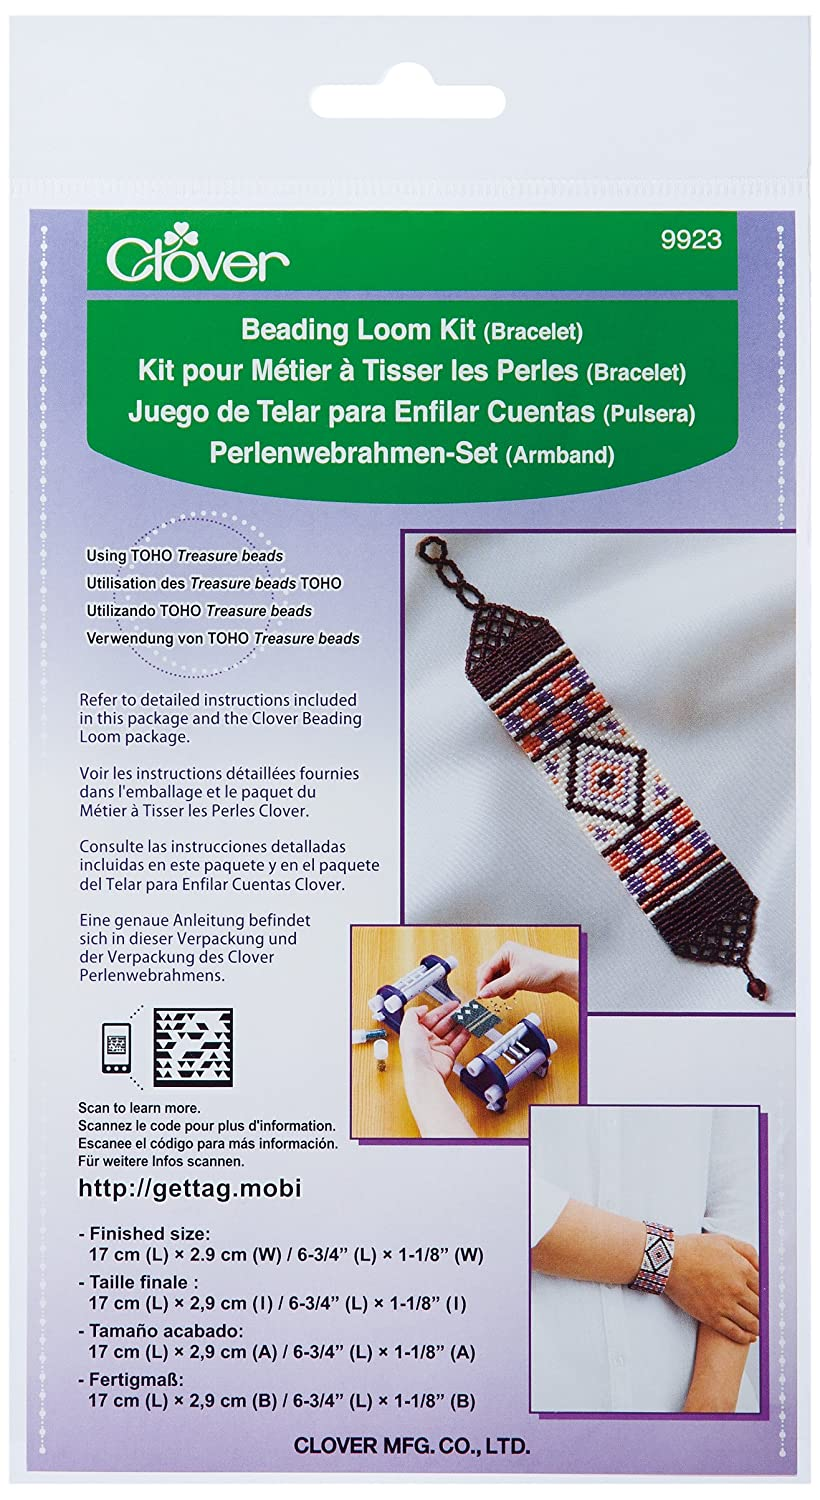 Clover 9923 Beading Loom Kit/Bracelet CLOVER MFG. CO. LTD.